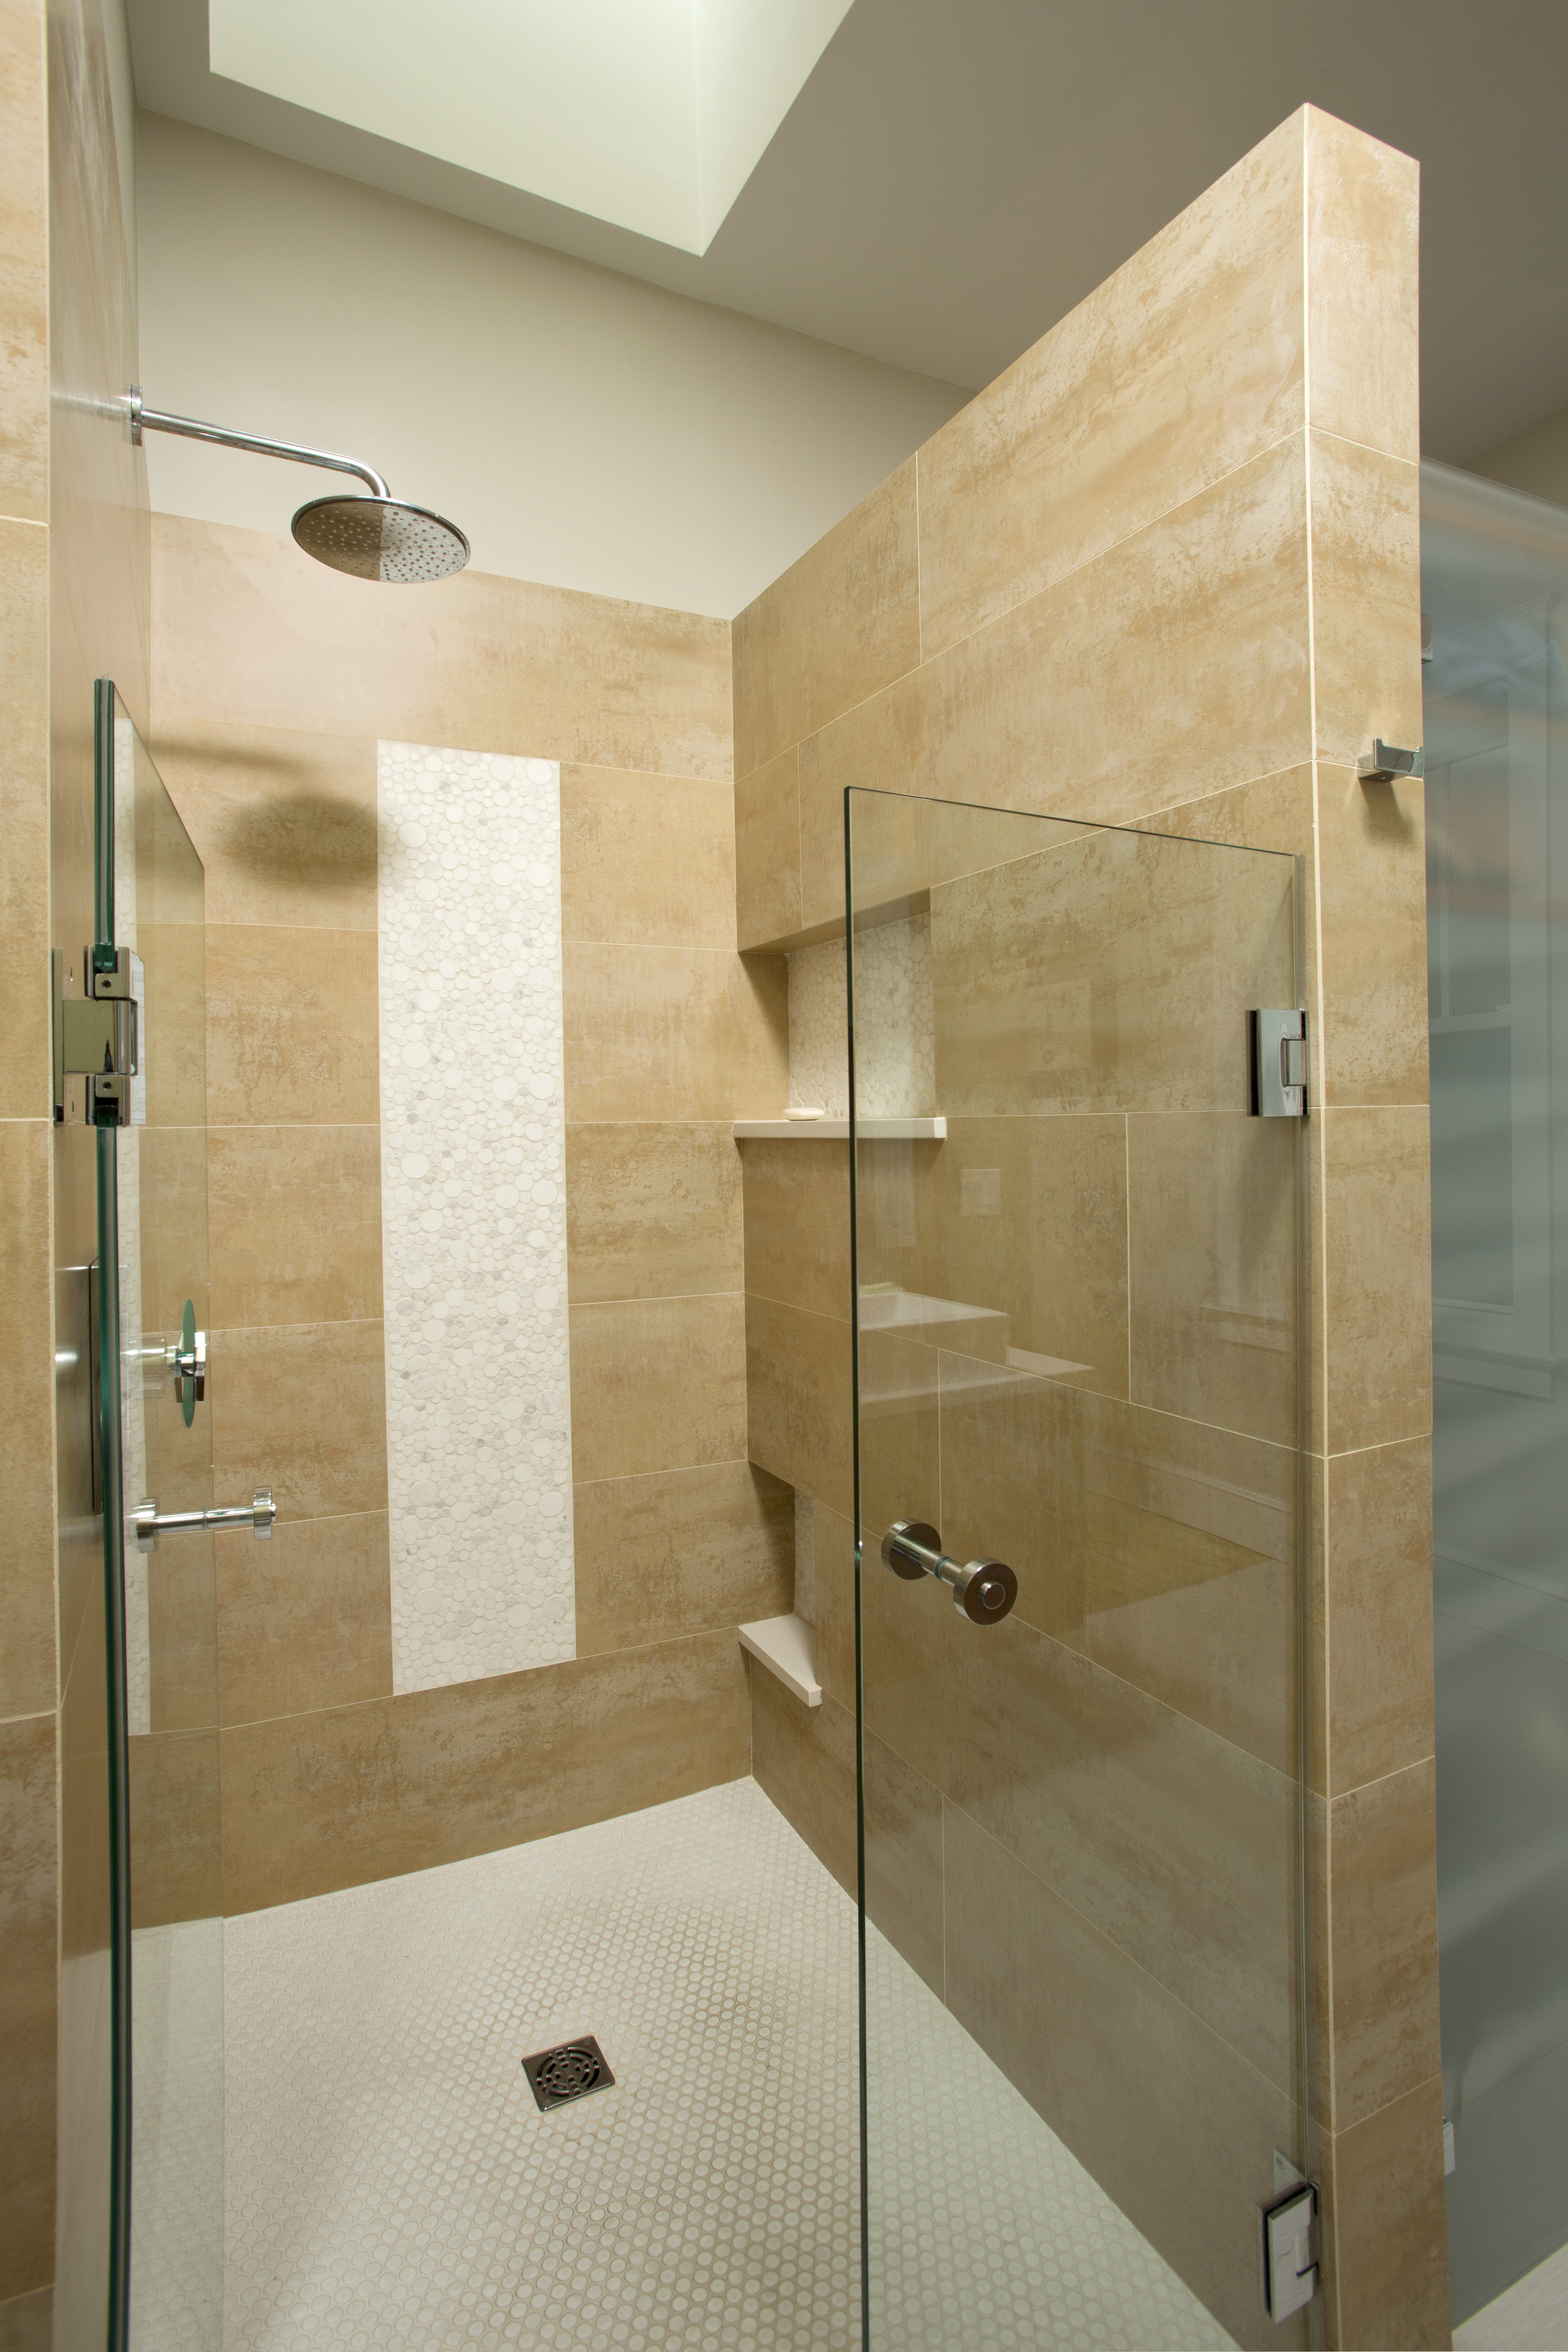 The glass-enclosed shower stall is lined with white tile and natural stone. The roomy stall has built-in cubbies.